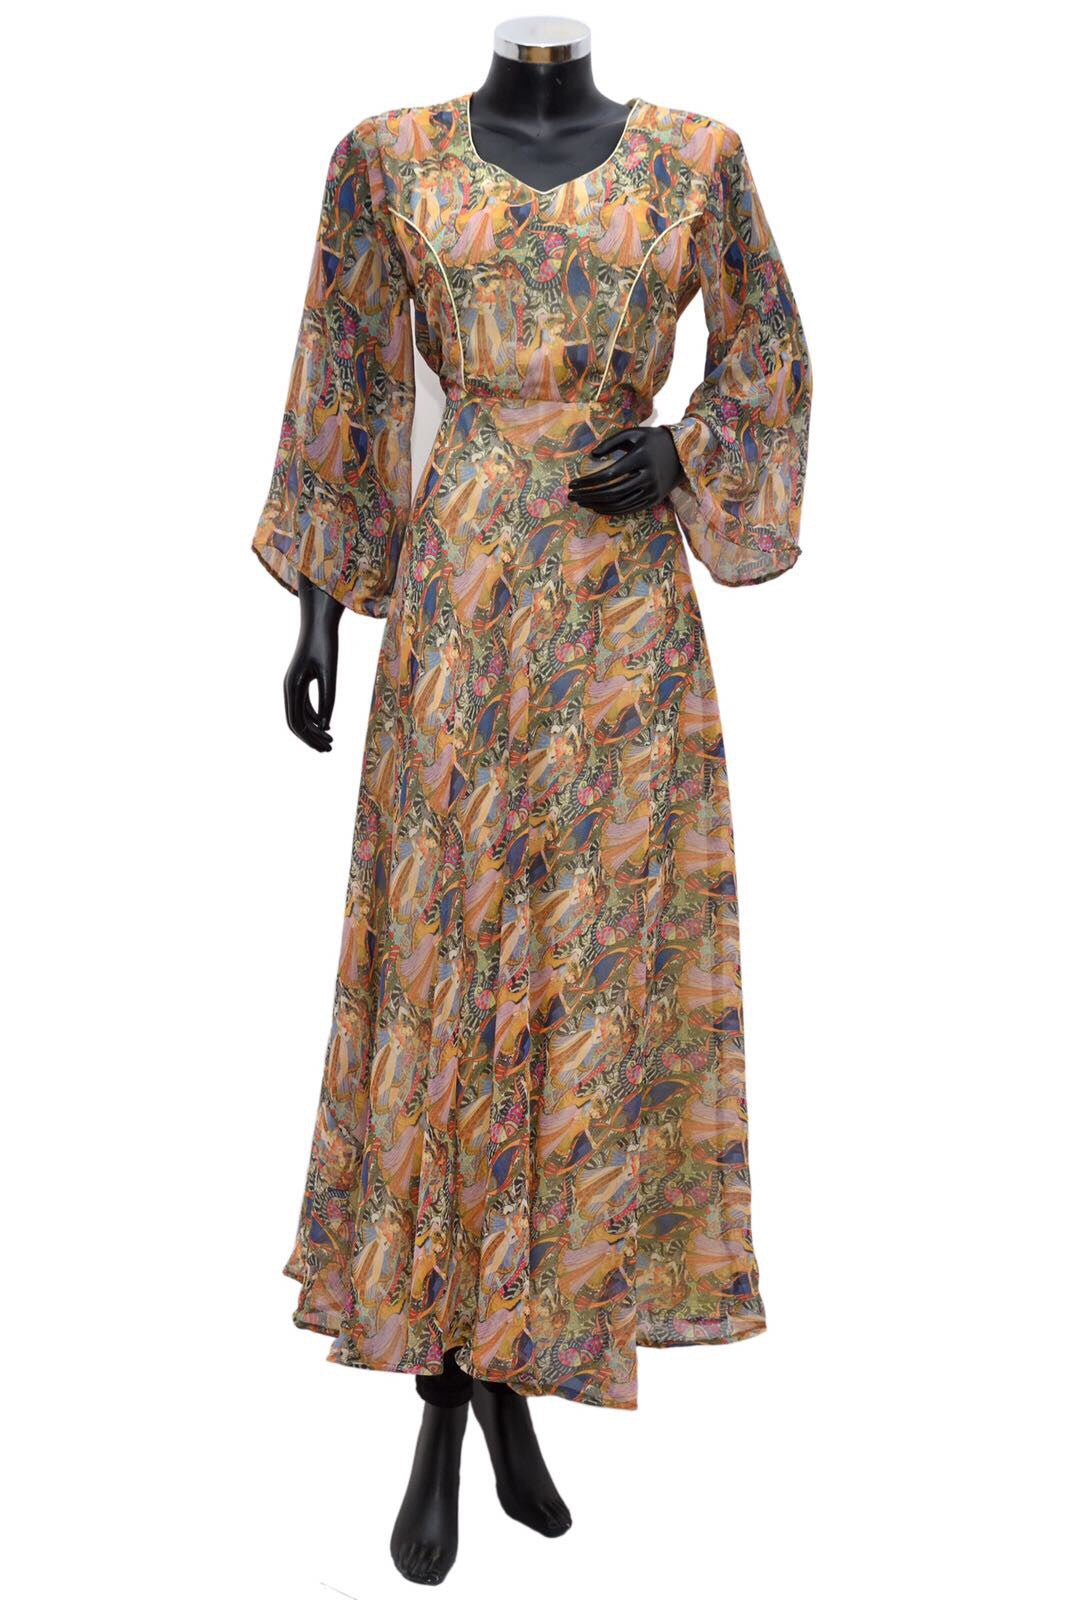 A long maxi dress printed #fdn671-141